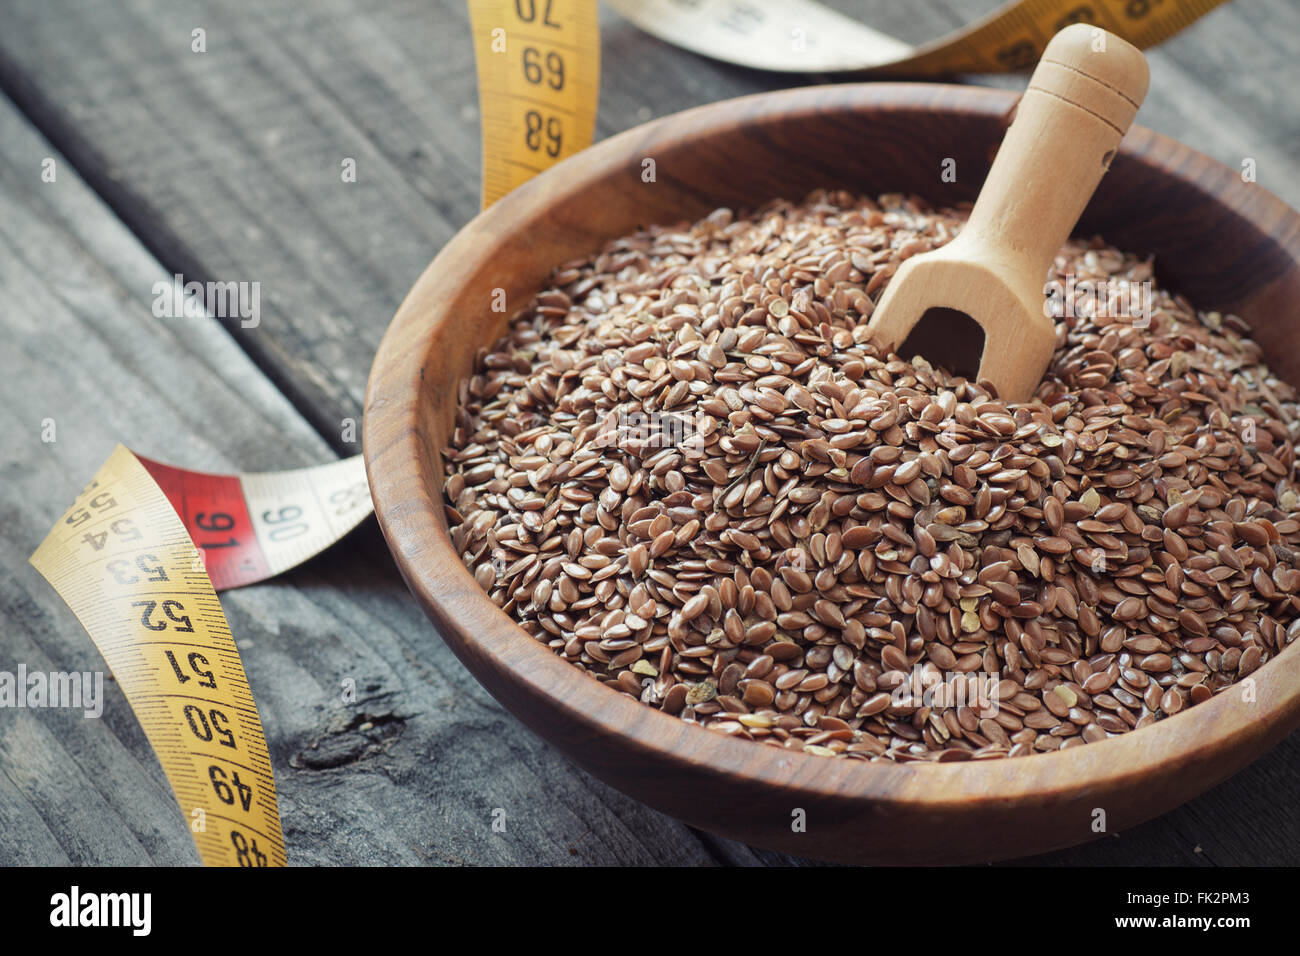 Flax seeds and measuring tape, weight reduction concept - Stock Image